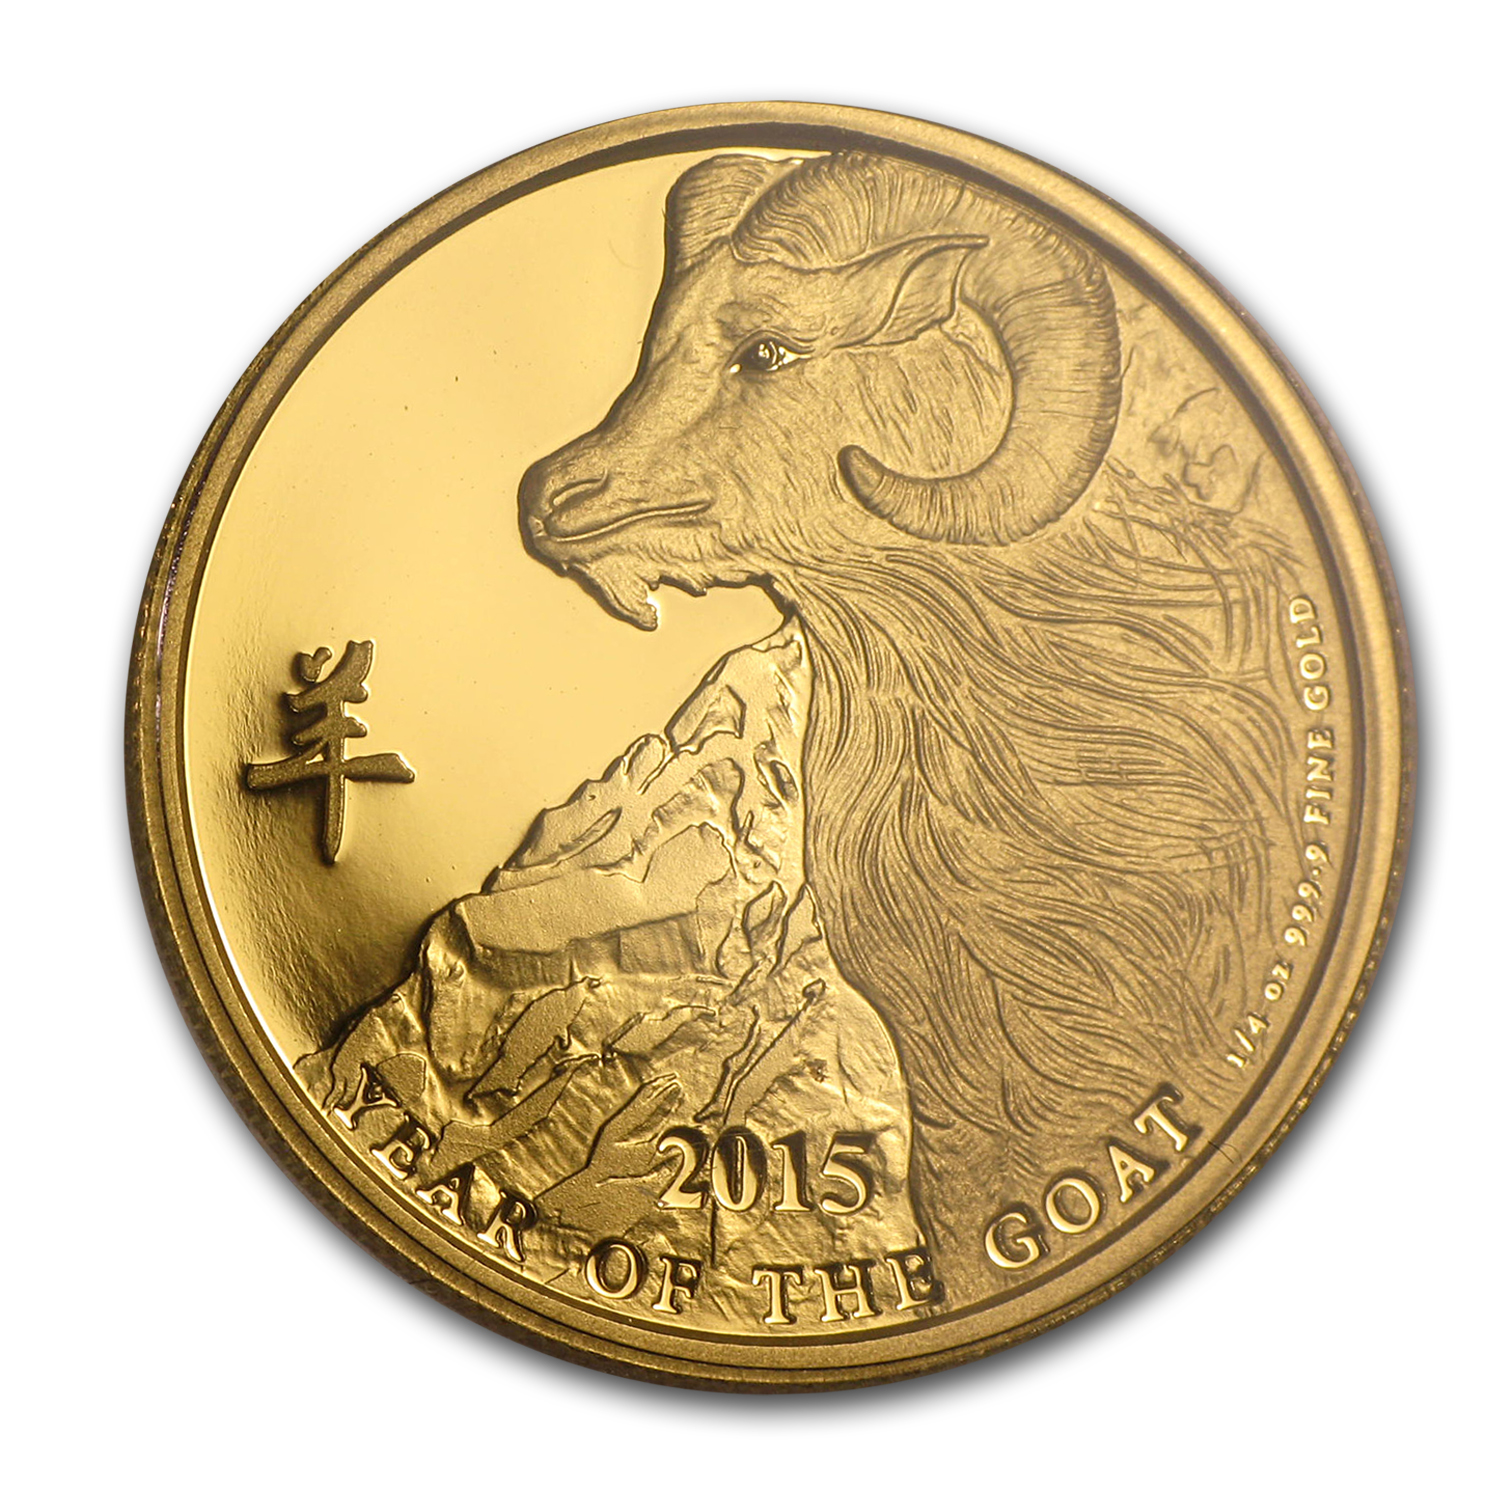 2015 Niue 1/4 oz Proof Gold $25 Lunar Goat